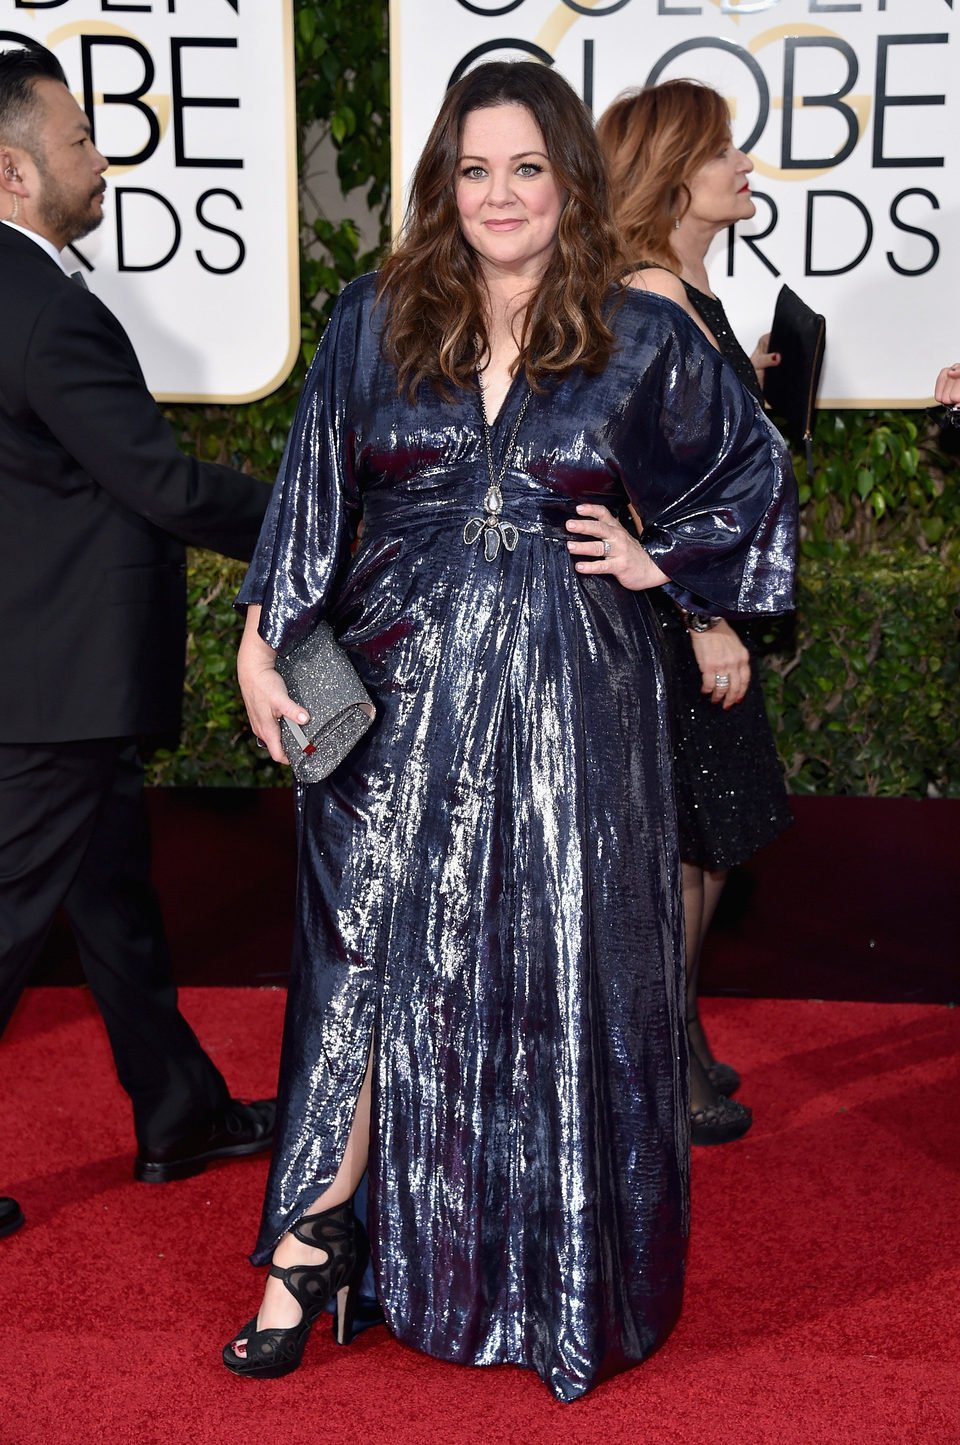 Melissa McCarthy in the 2016 Golden Globes red carpet